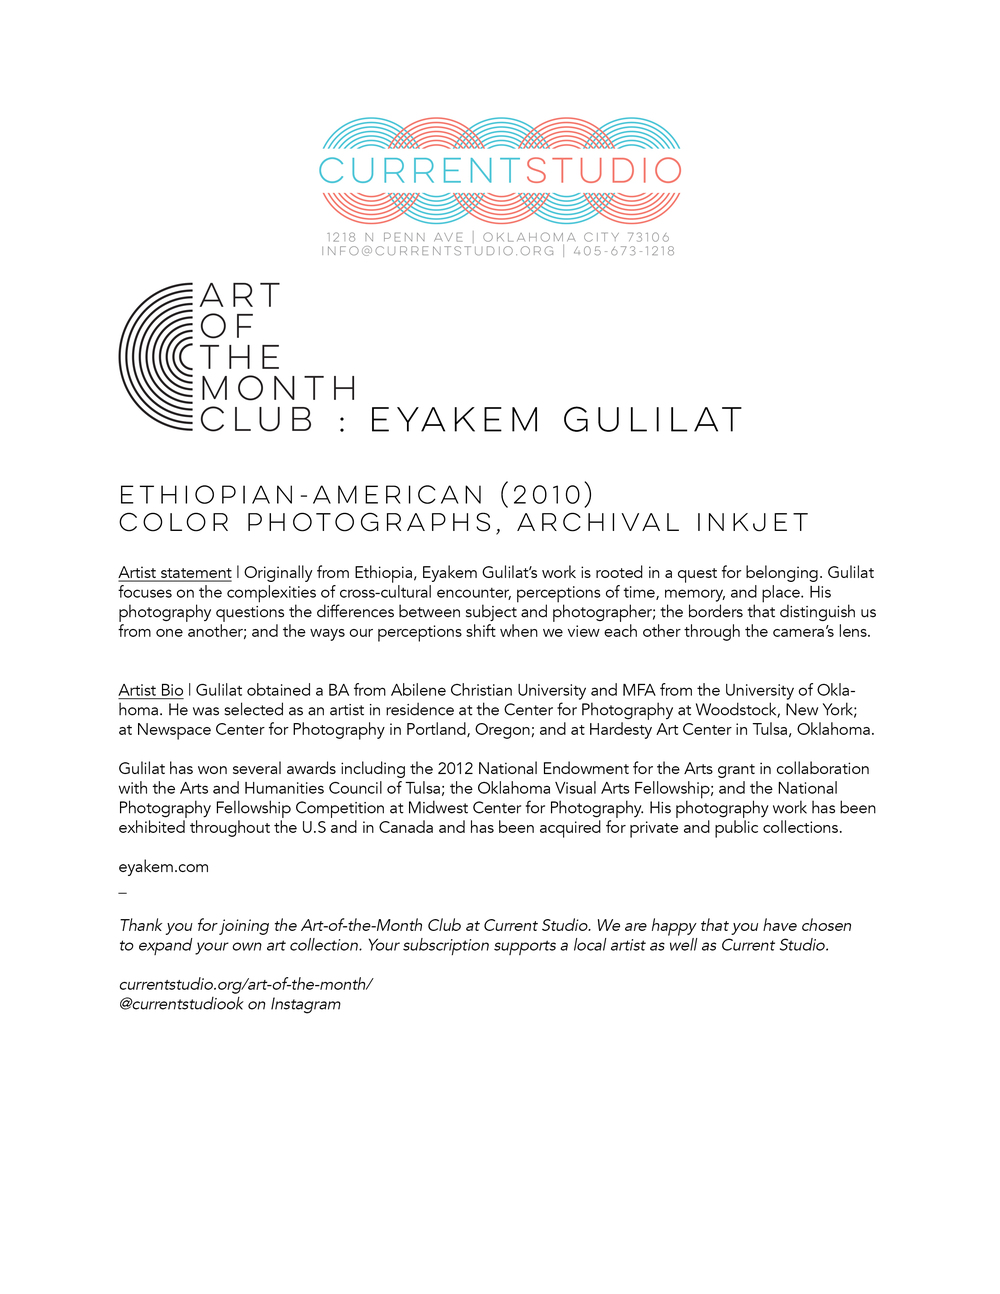 art of the month artist sheet - eyakem gulilat.jpg